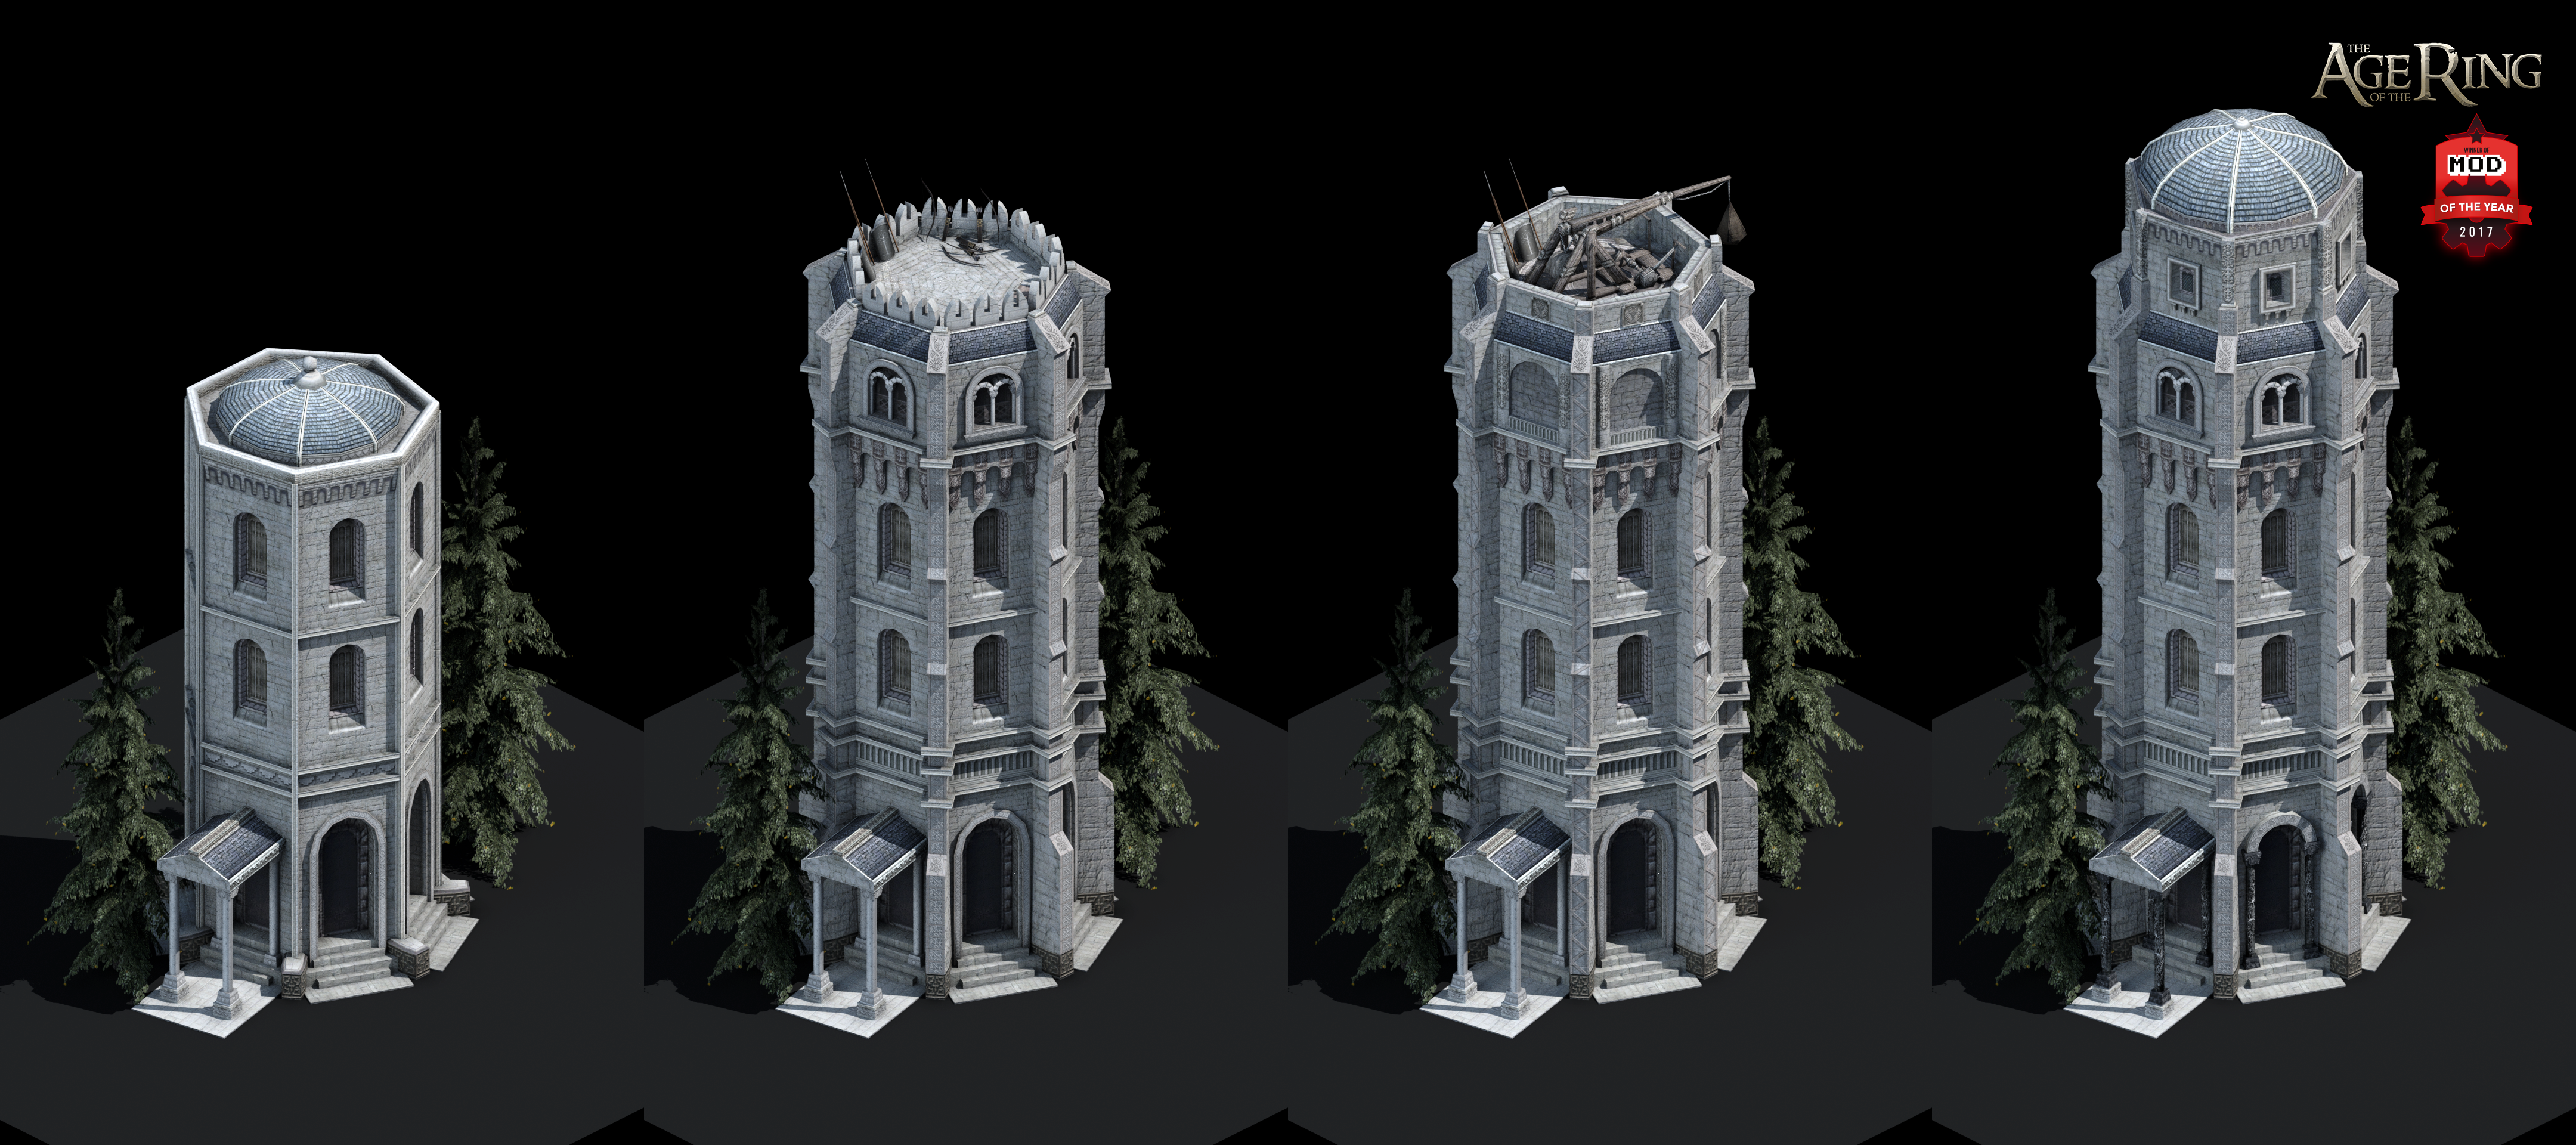 Gondor Civilian Towers Age Of Empires Ii Image Age Of